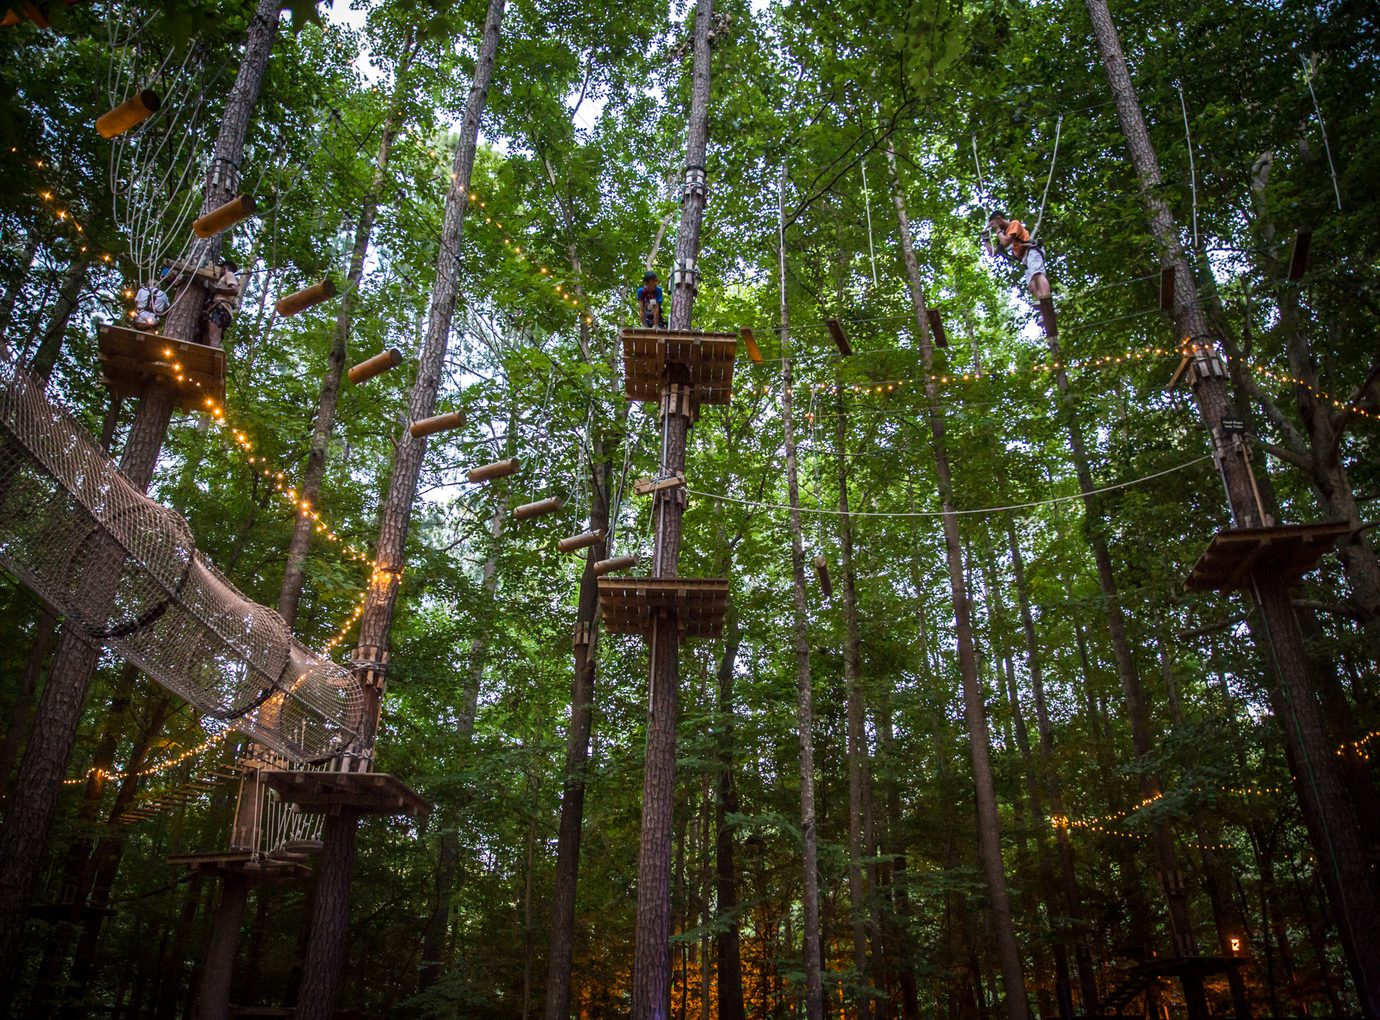 obstacle course in forest